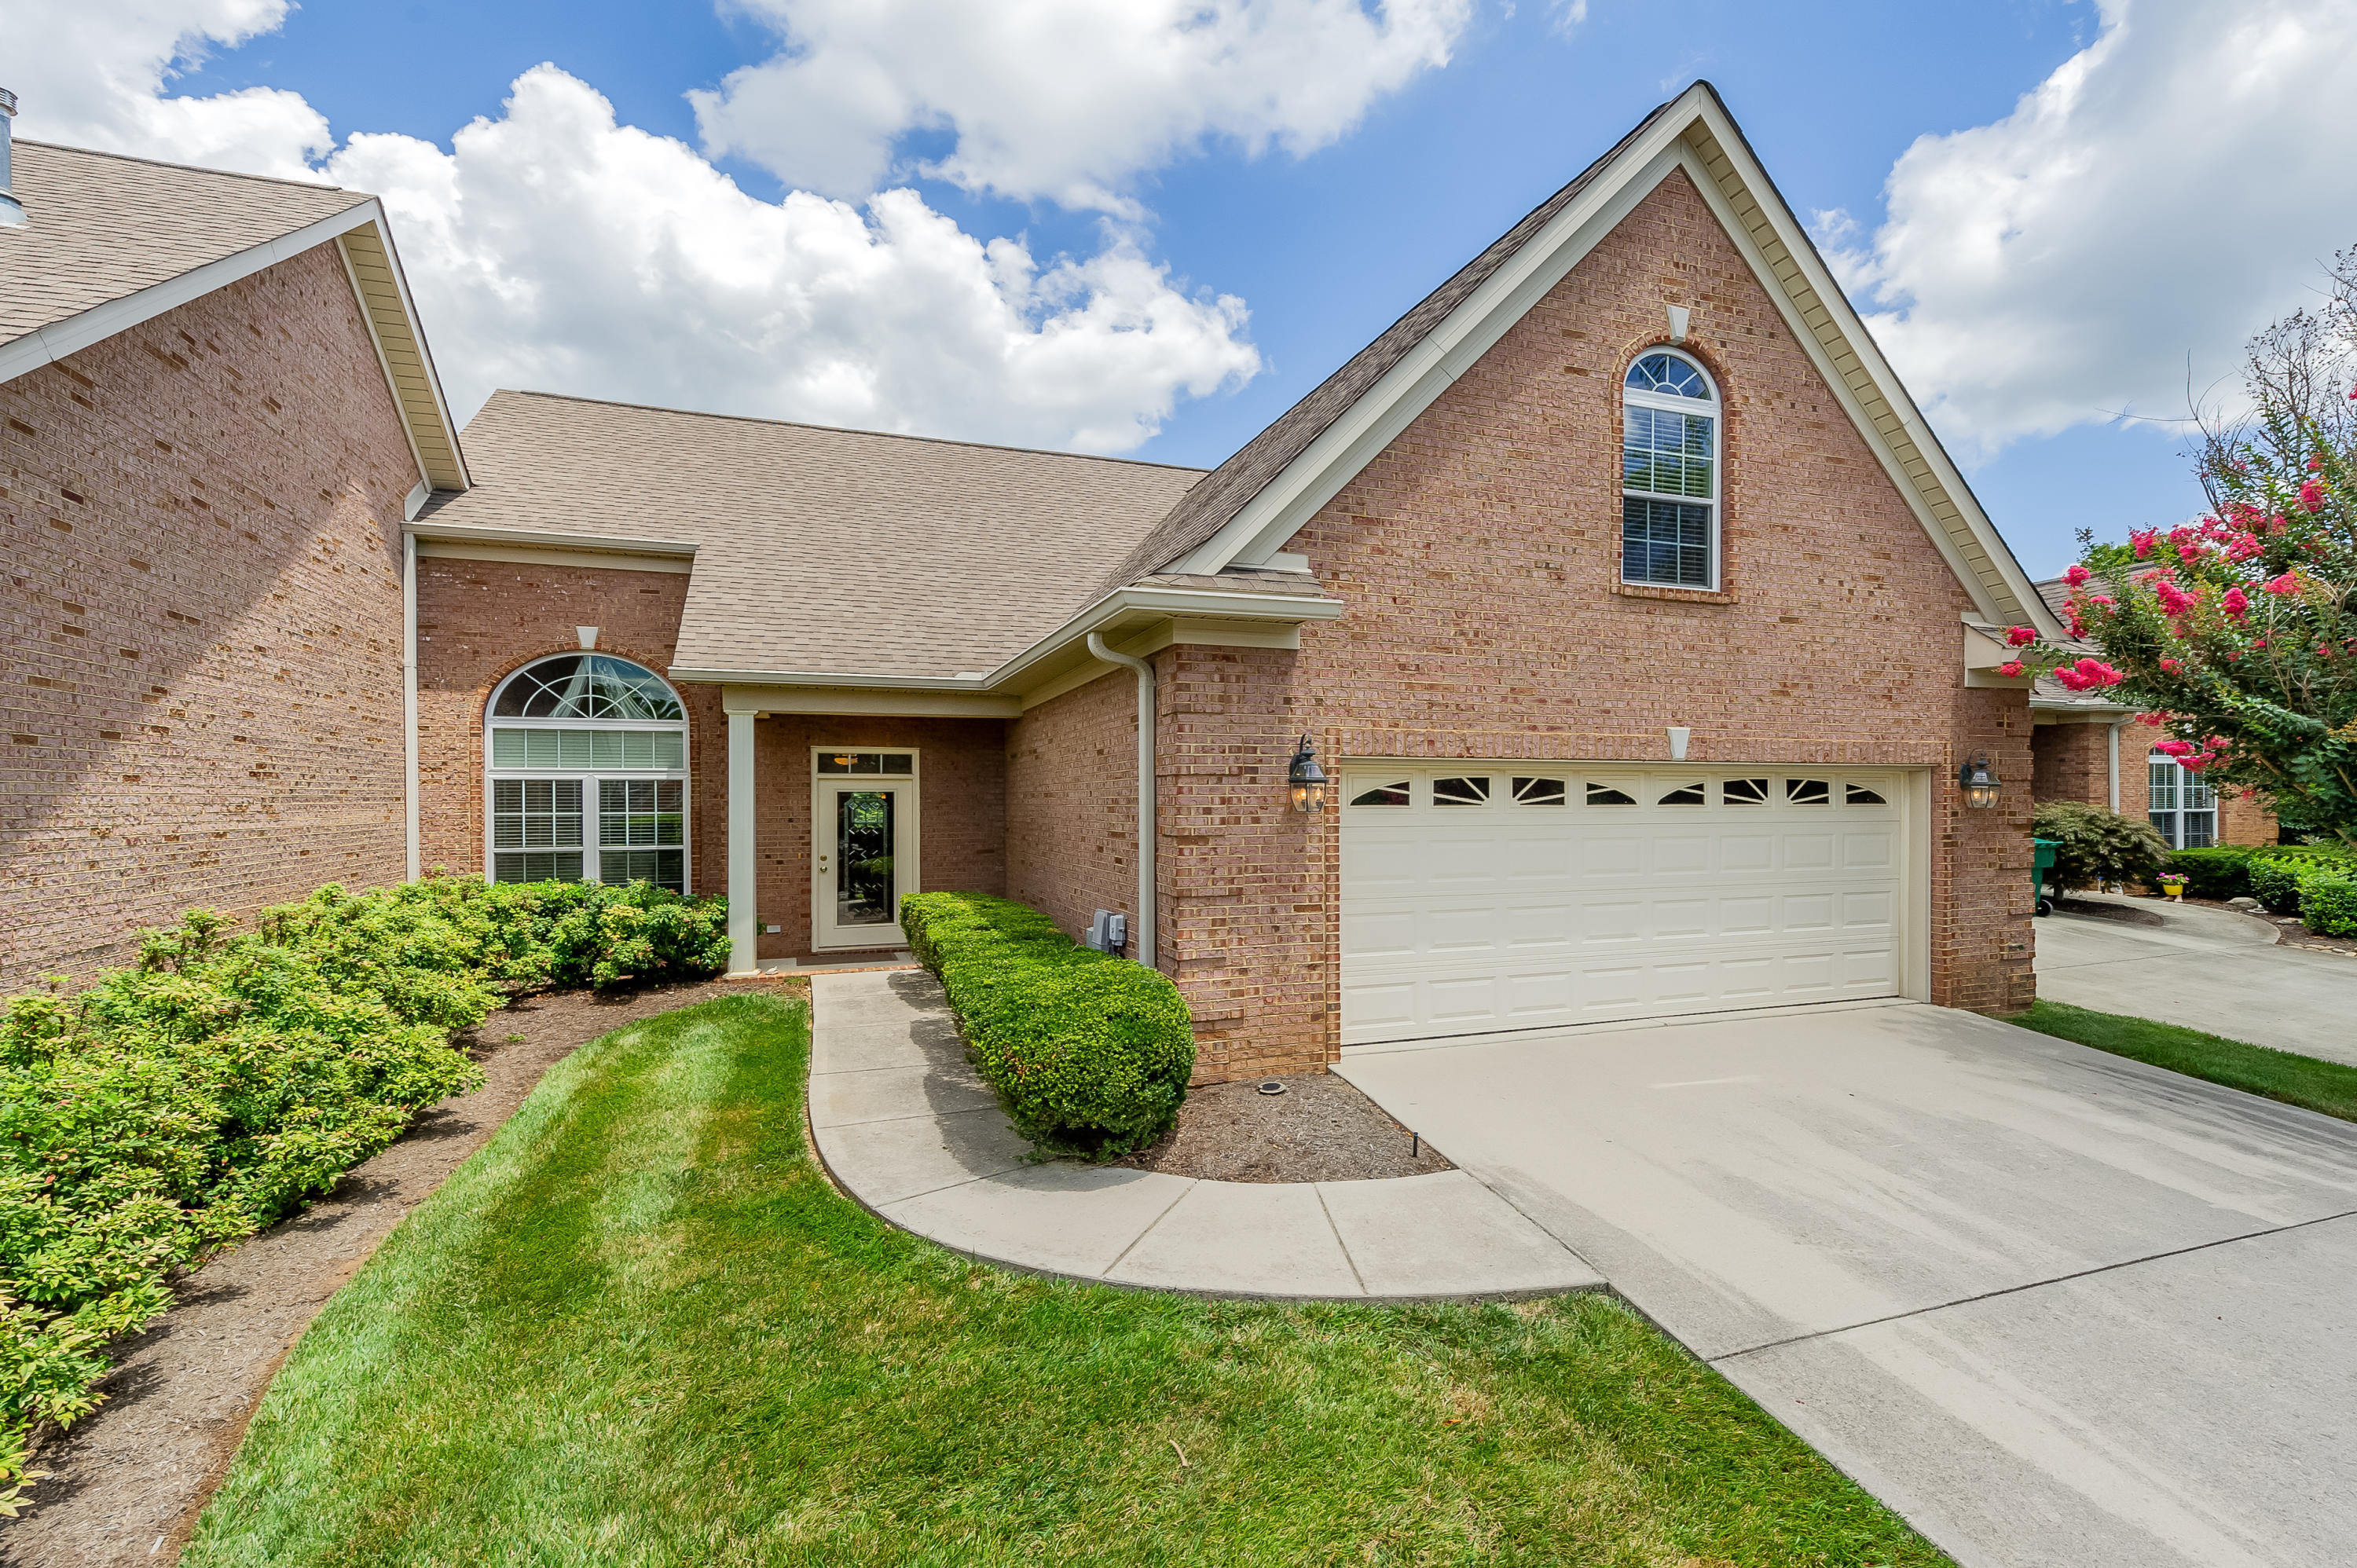 8822 BELLE MINA WAY, KNOXVILLE, TN 37923 - The Hughes Properties Realty  Executives Associates